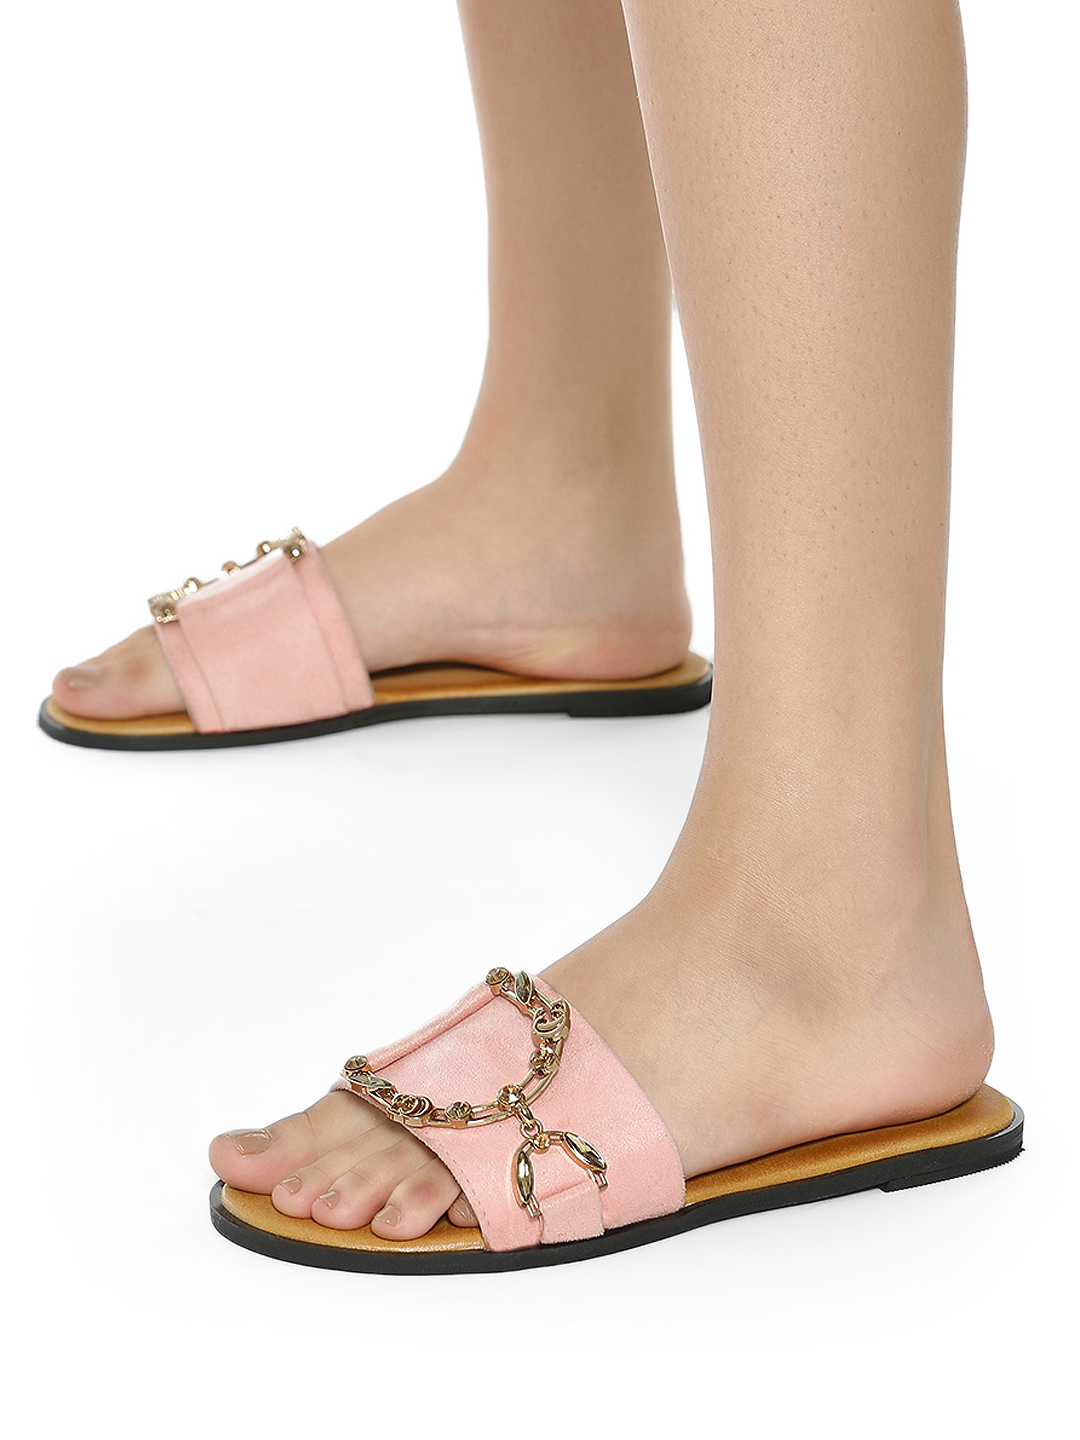 Sole Story Pink Diamante Embellished Chain Suede Flat Sandals 1